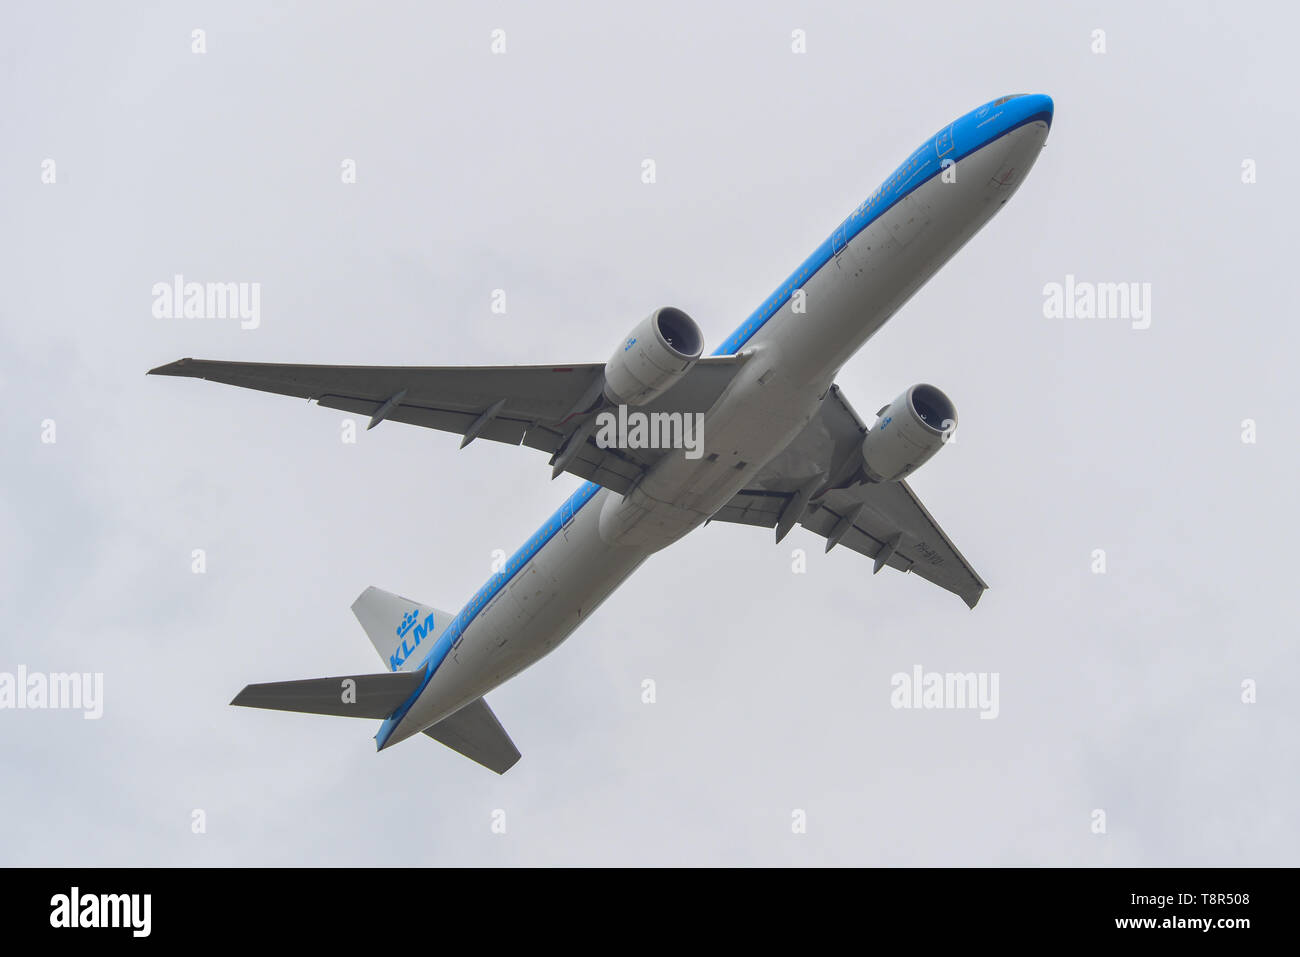 Tokyo, Japan - Apr 17, 2019. PH-BVU KLM Royal Dutch Airlines Boeing 777-300ER taking-off from Narita Airport (NRT). - Stock Image